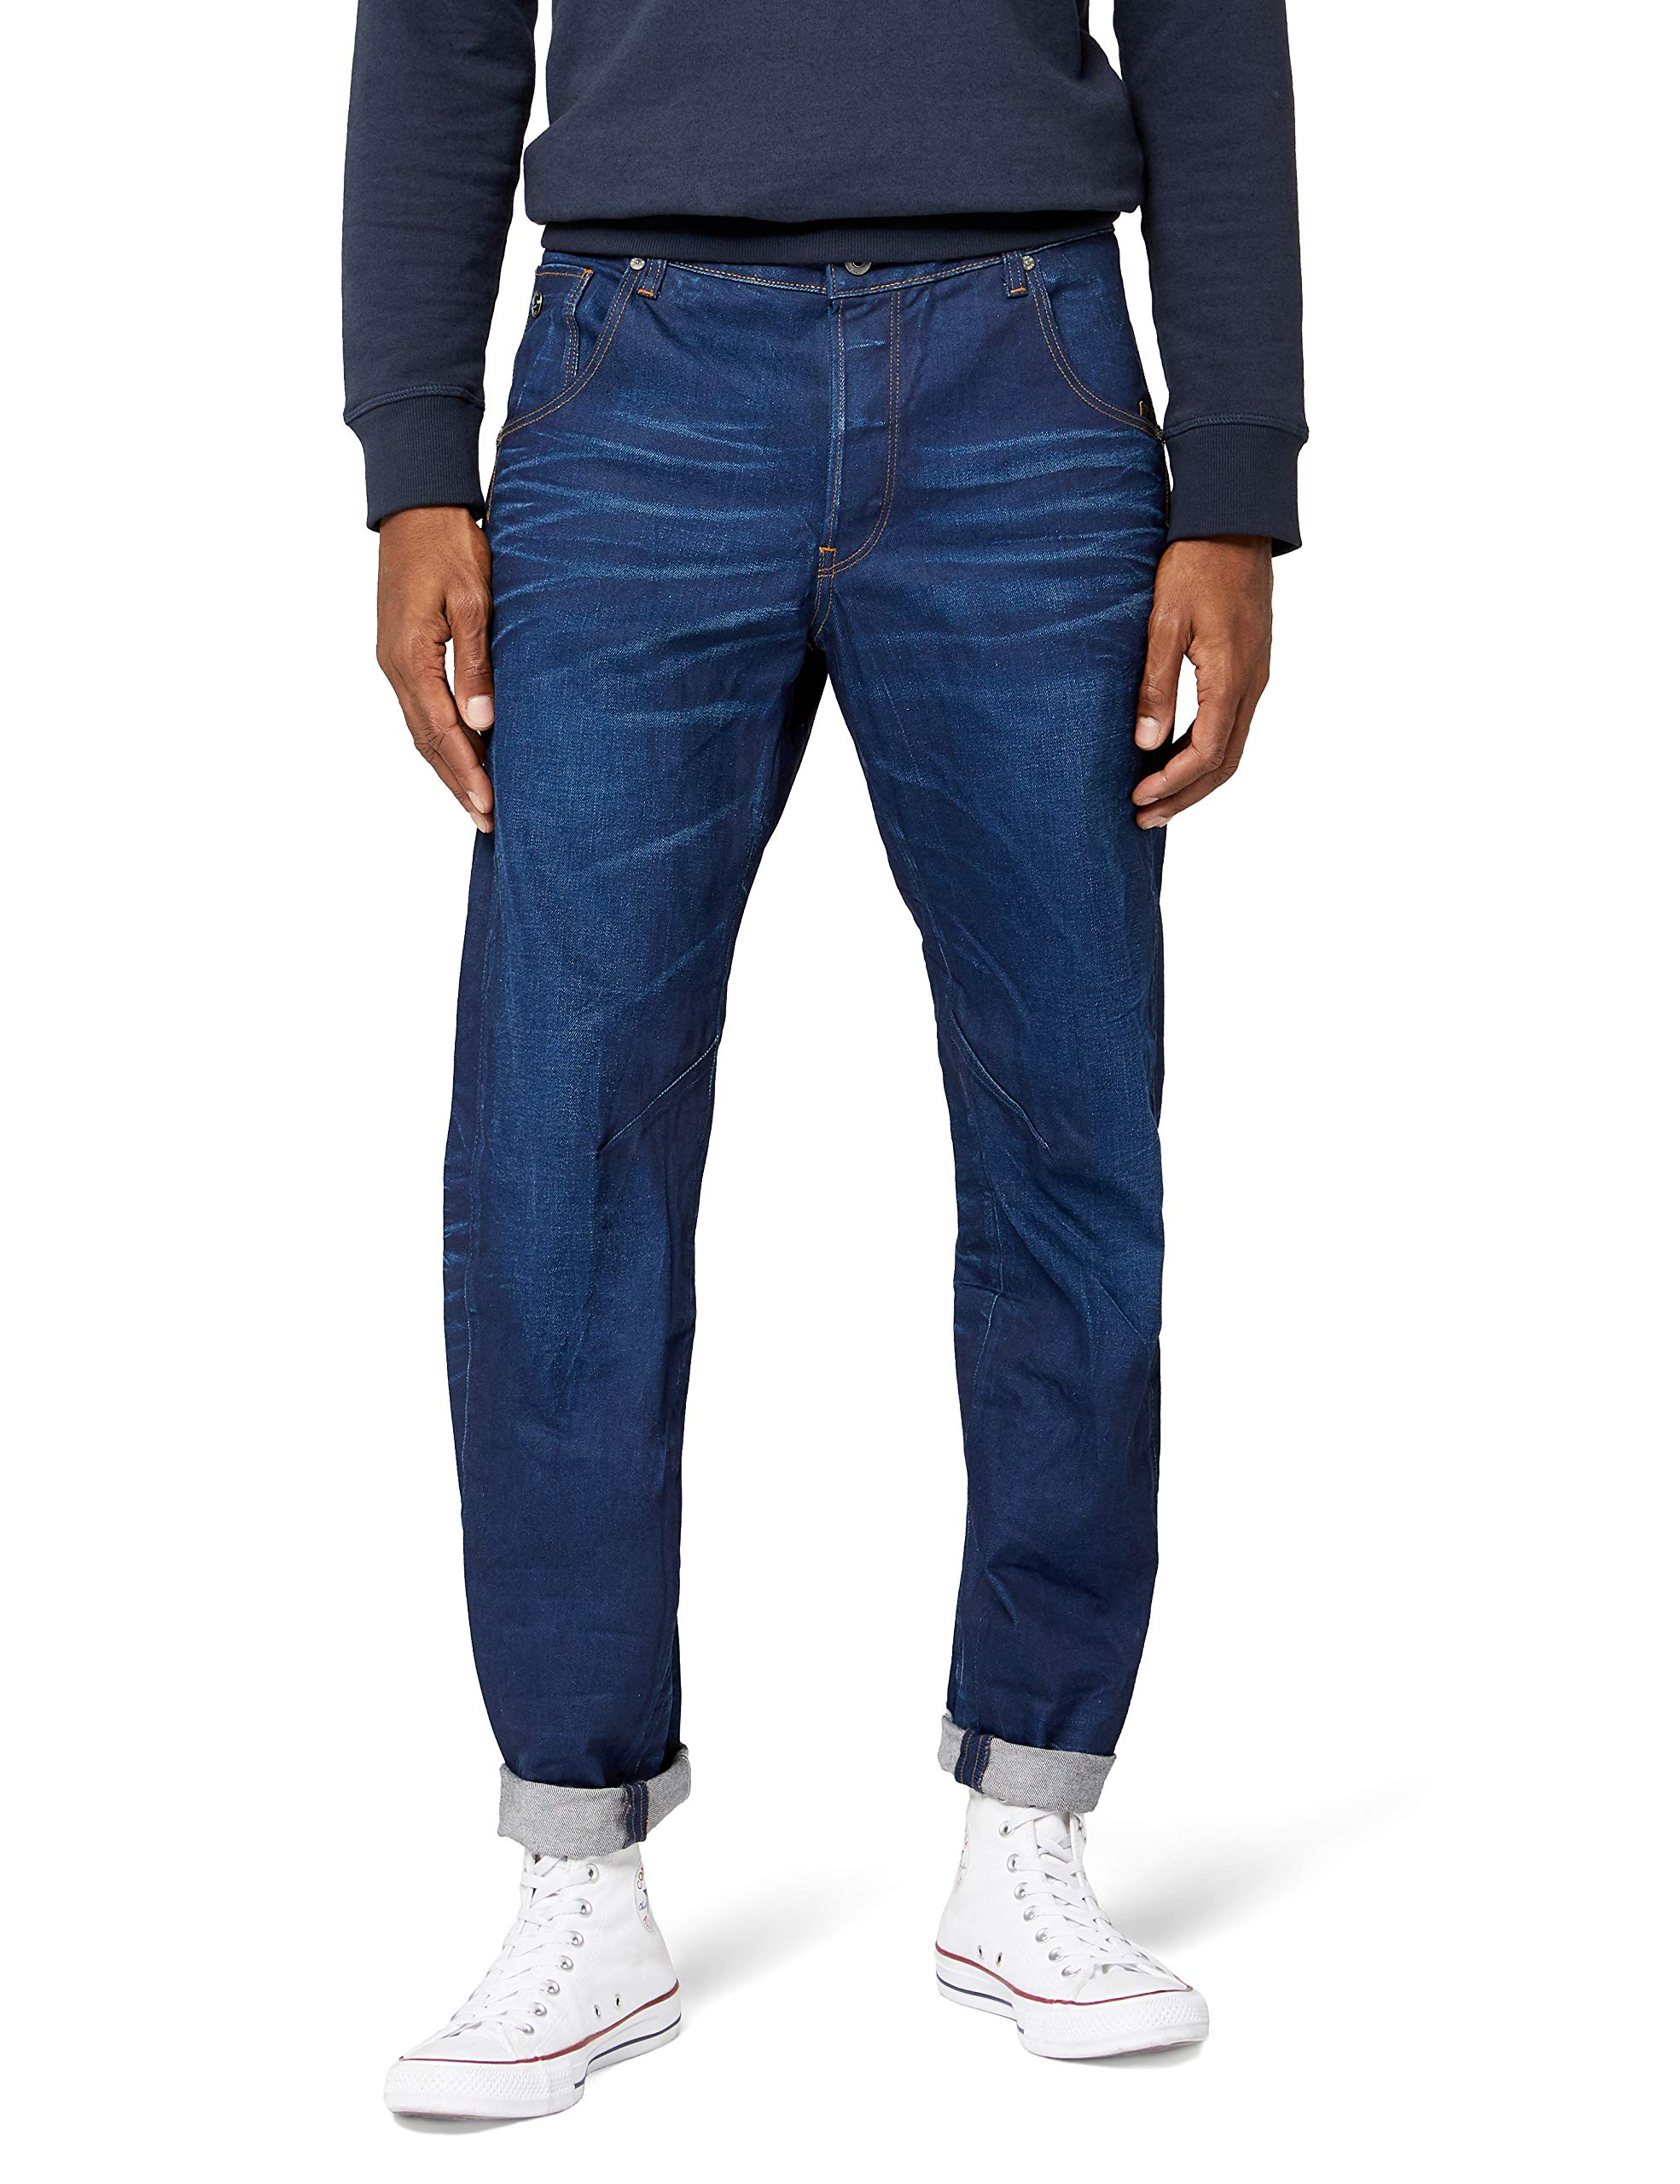 G Arc 36 Aged35 uk star Raw 3dJeans HommeBleumedium 8wON0nPkX